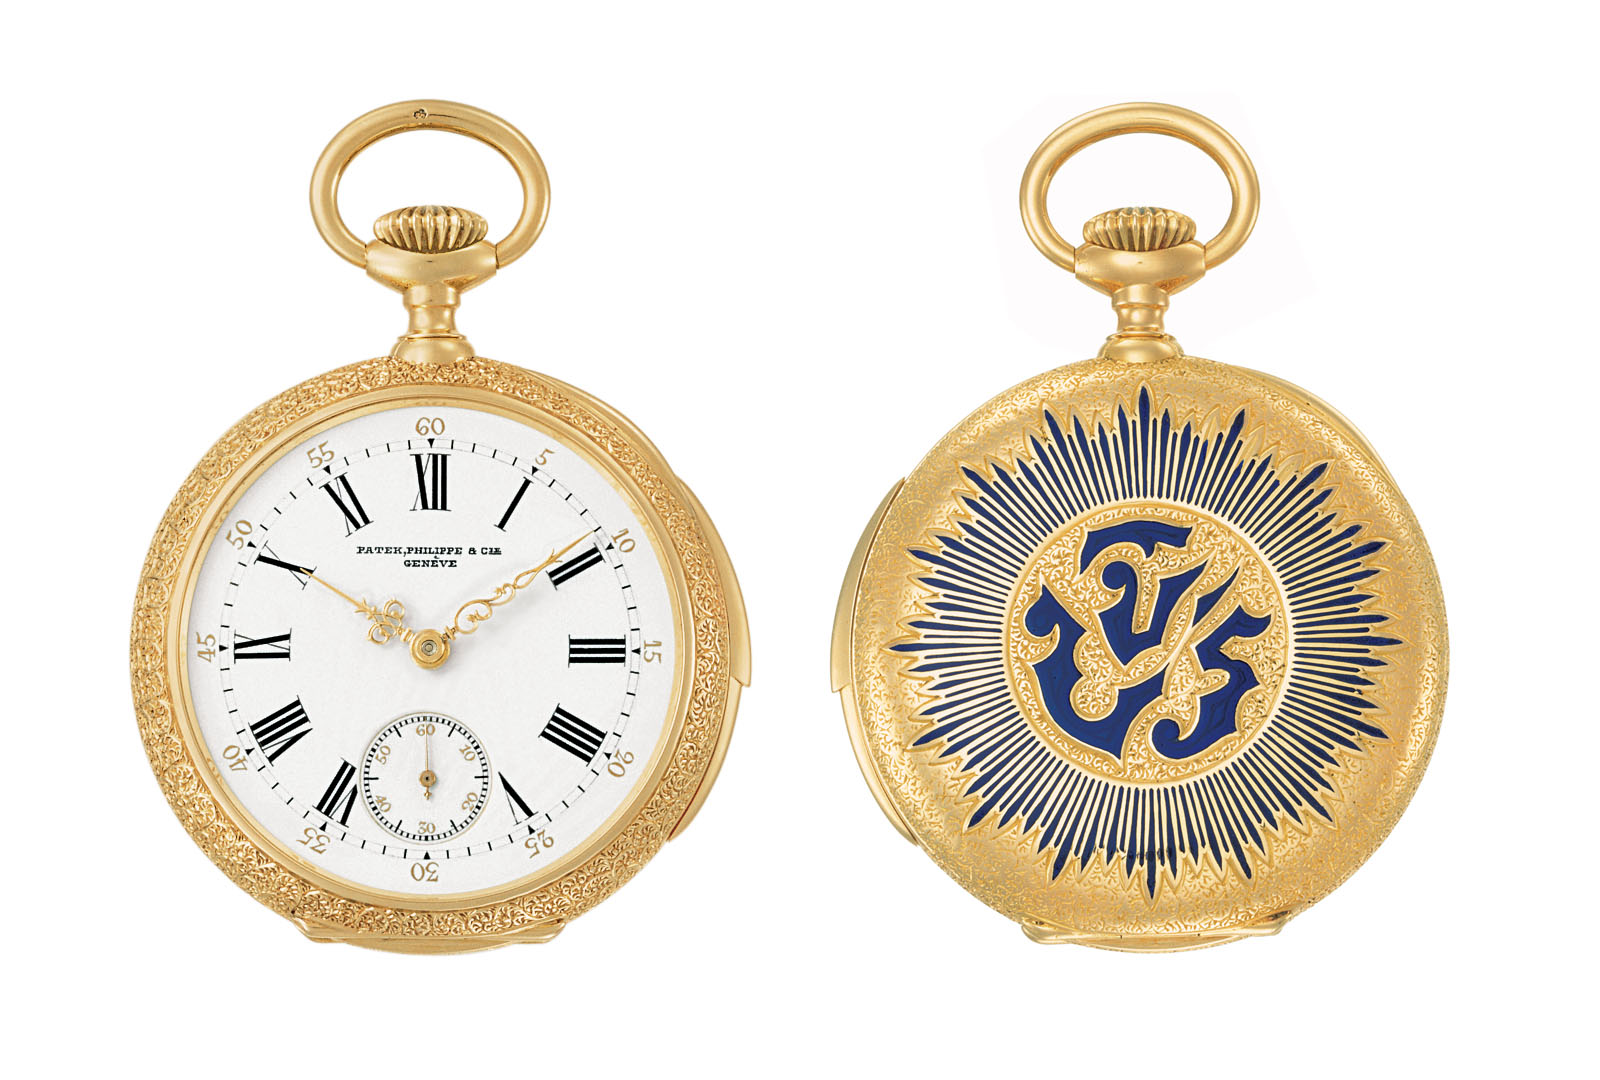 Patek Philippe King of Siam Pocket Watch